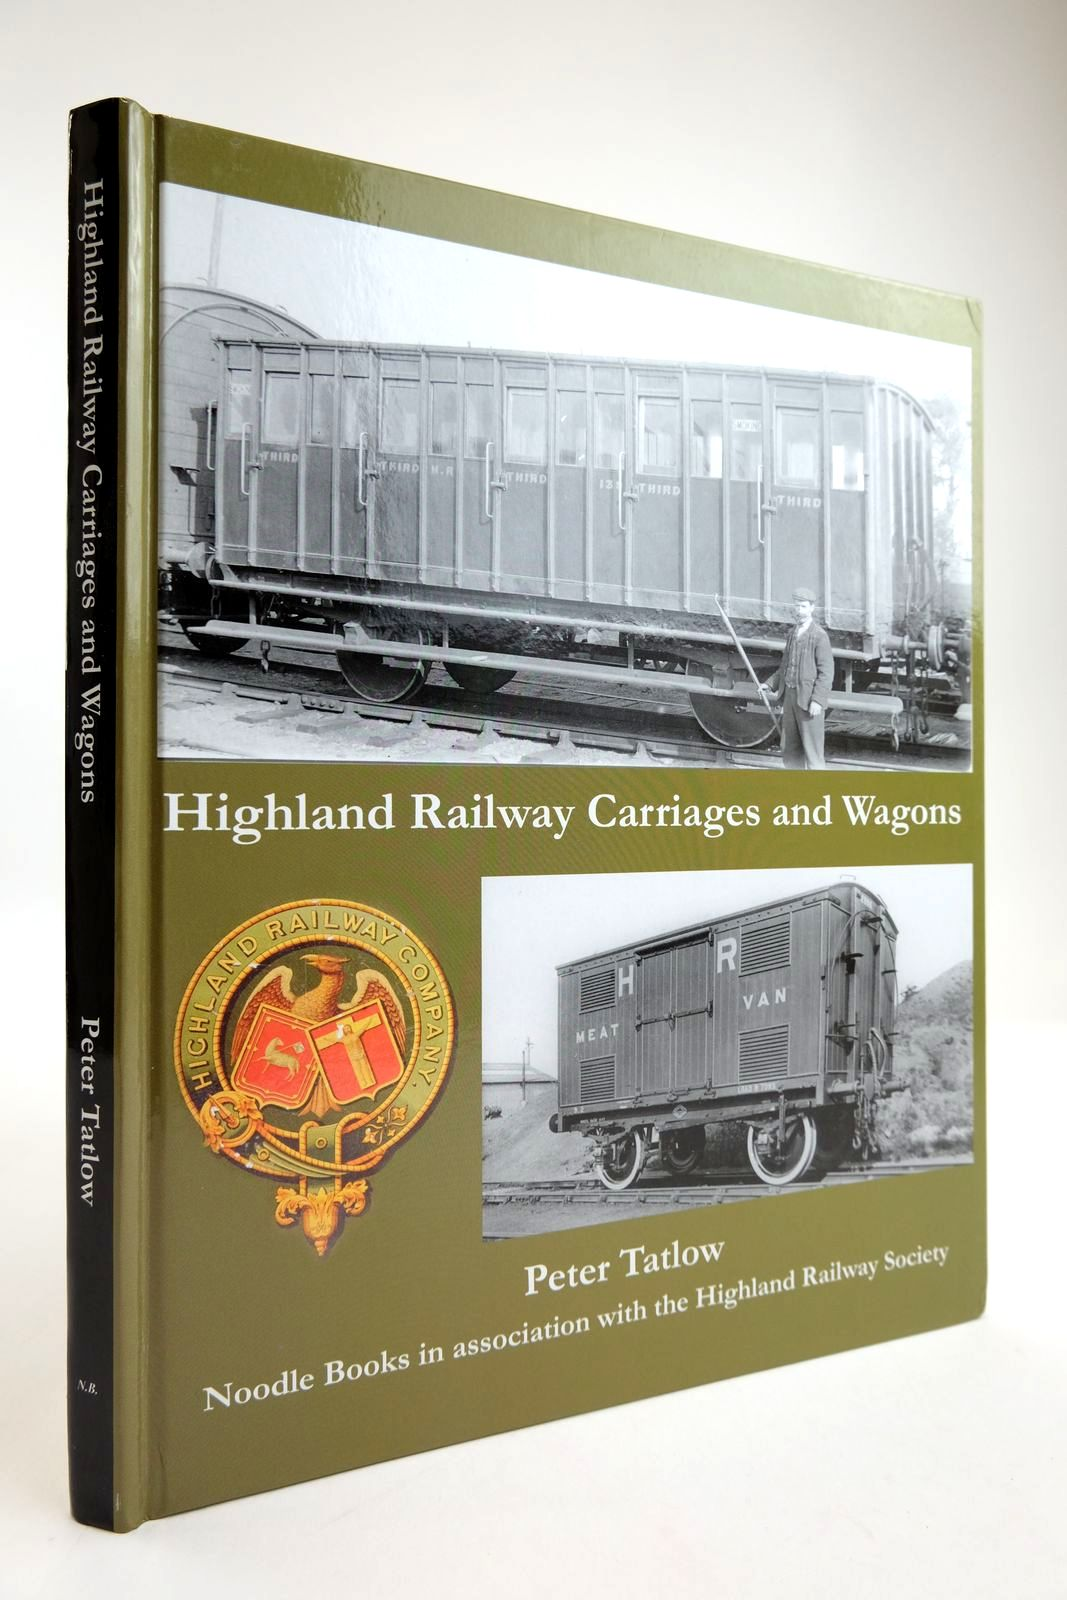 Photo of HIGHLAND RAILWAY CARRIAGES AND WAGONS written by Tatlow, Peter published by Noodle Books, The Highland Railway Society (STOCK CODE: 2133837)  for sale by Stella & Rose's Books